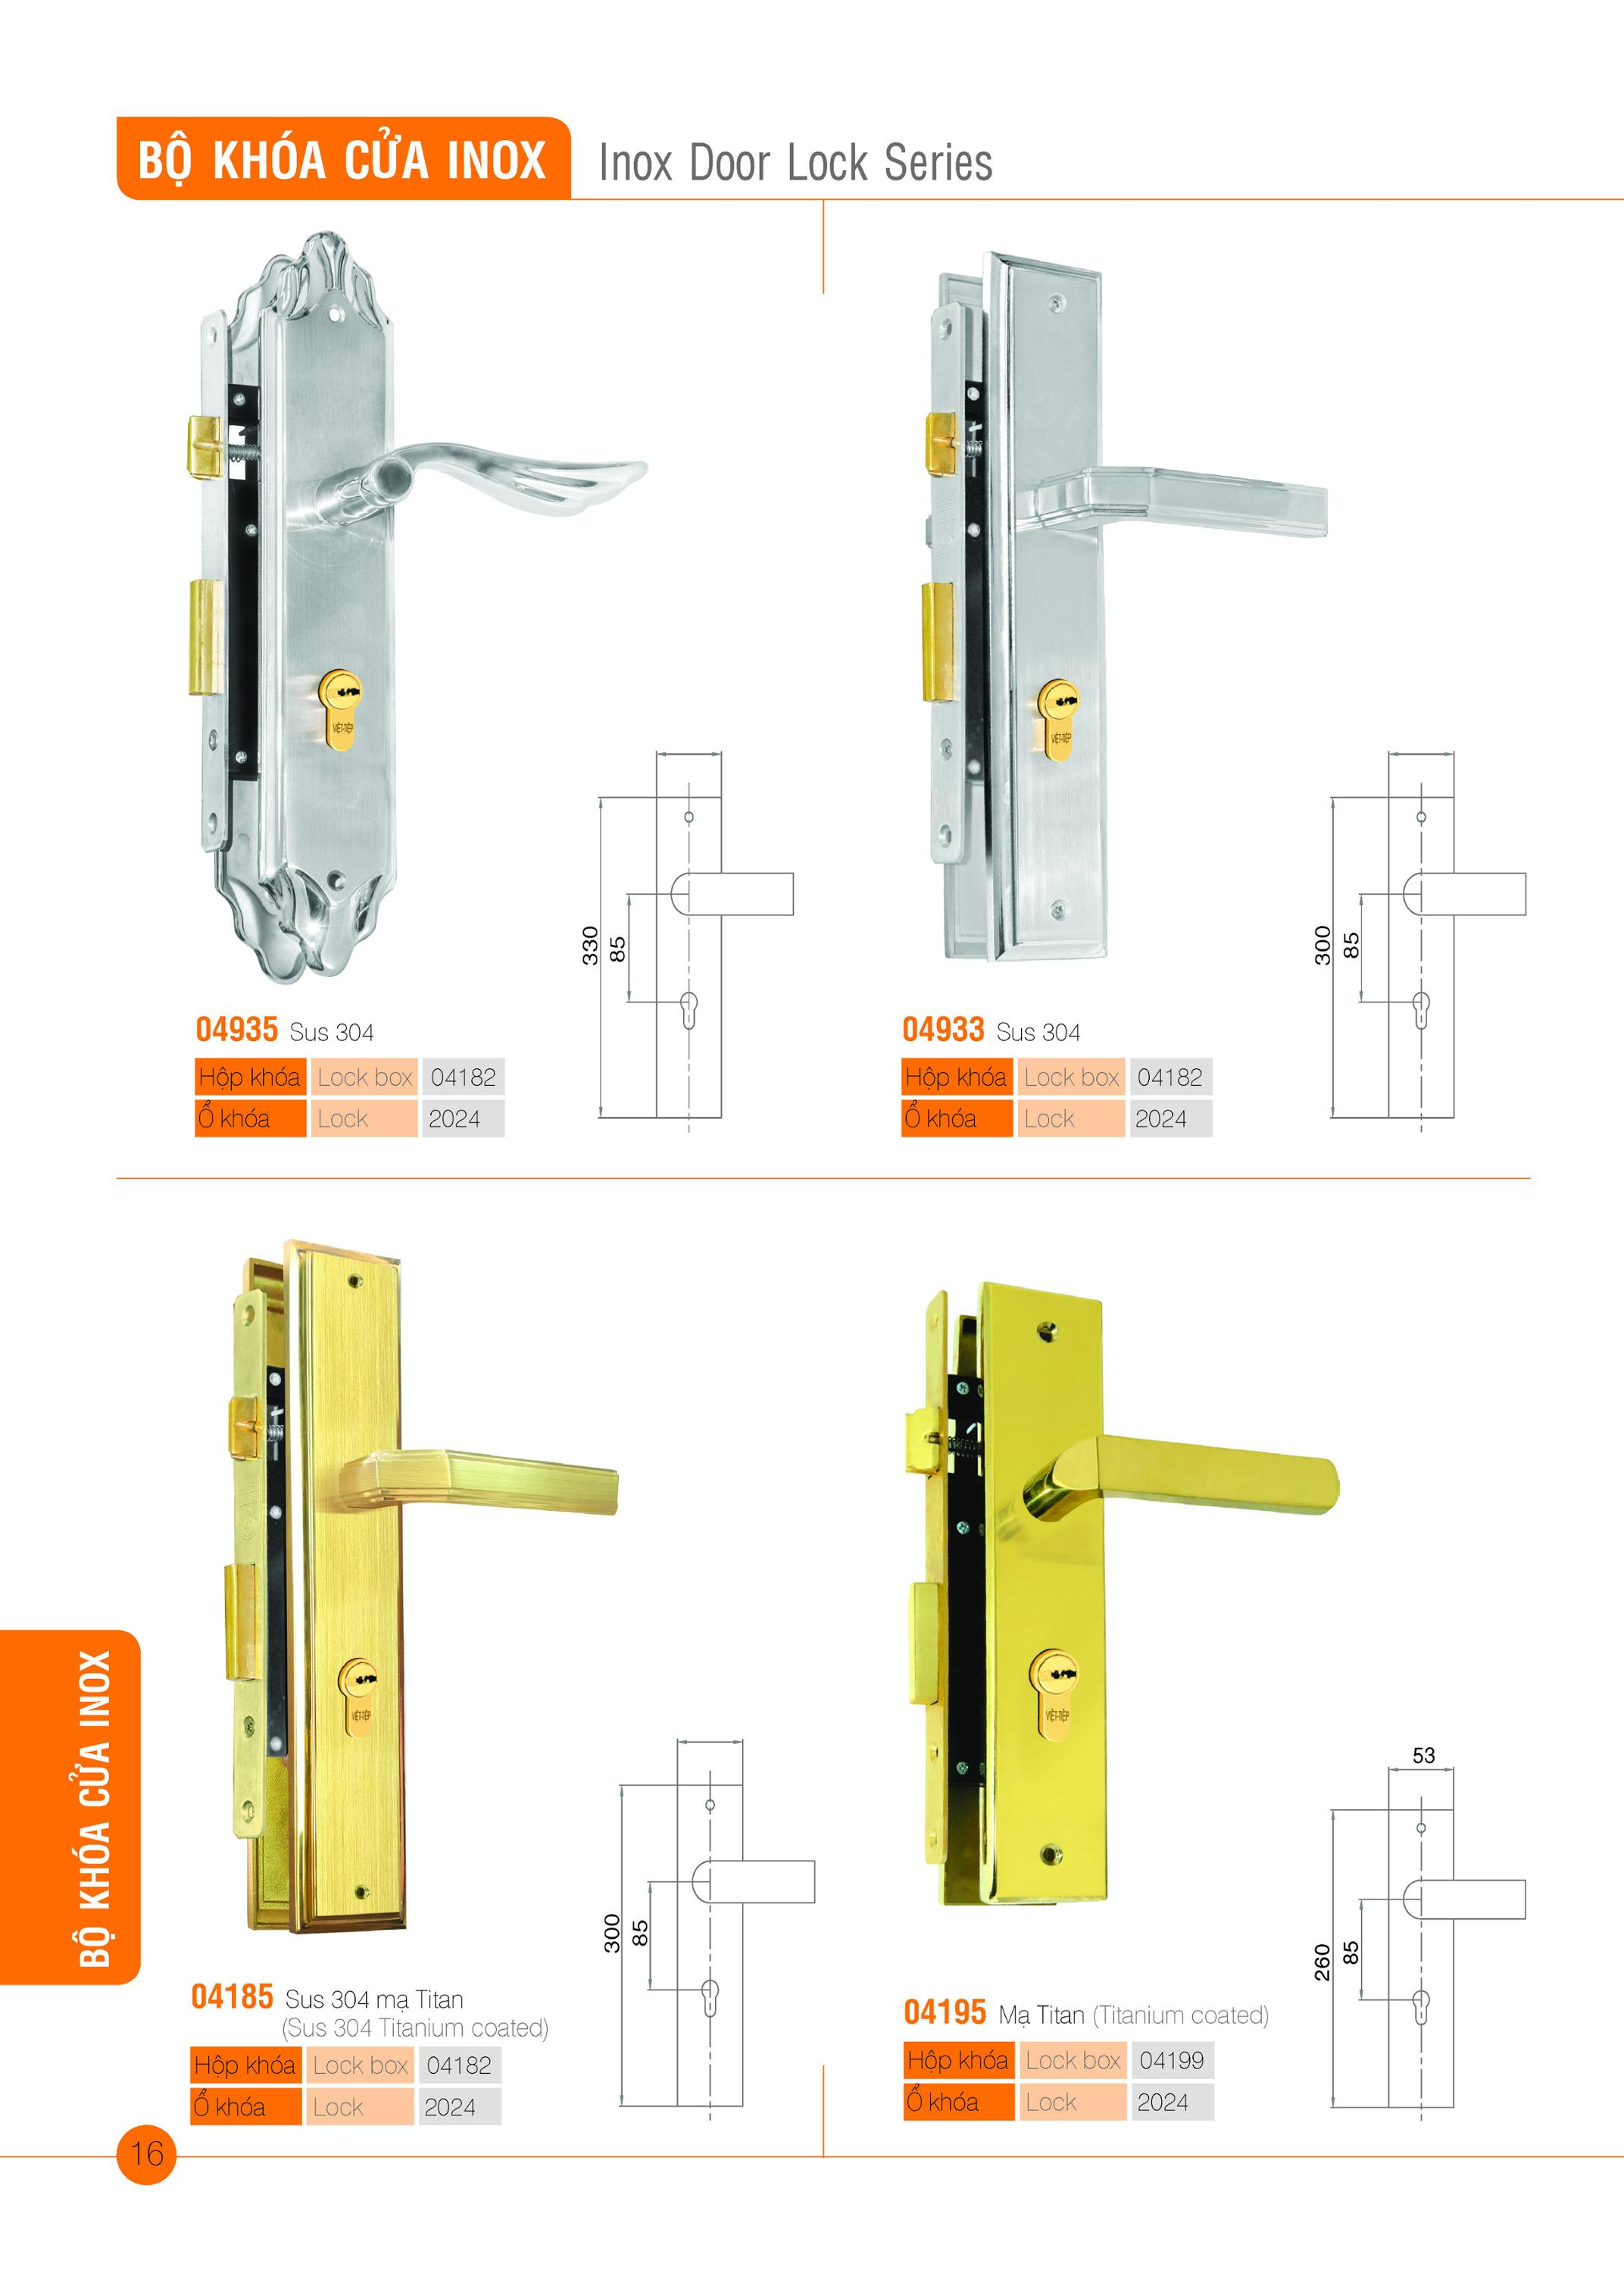 Inox door Lock Series